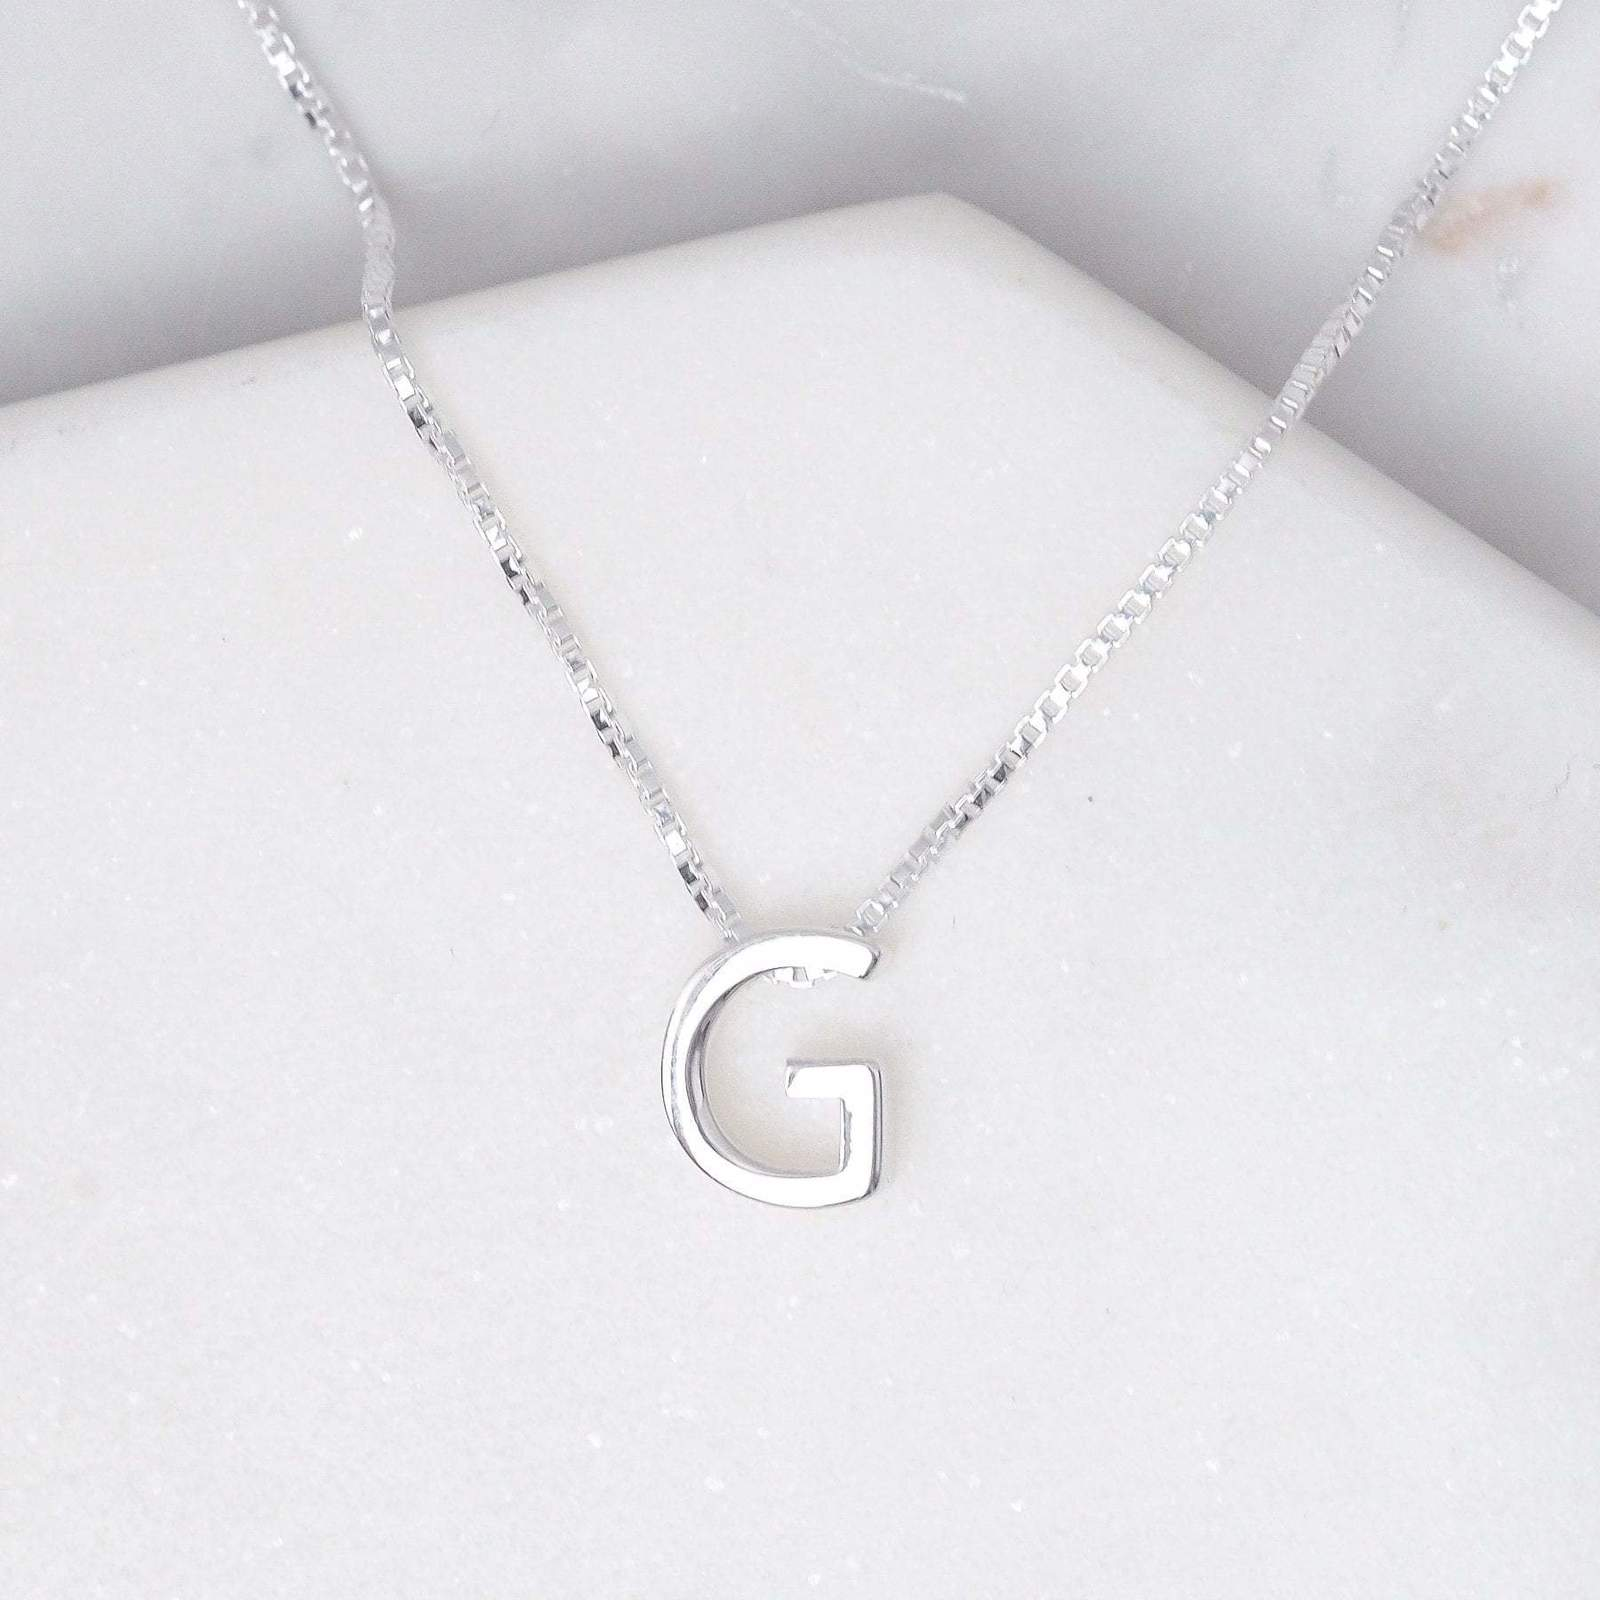 Midsummer Star: Alphabet Necklace - G image